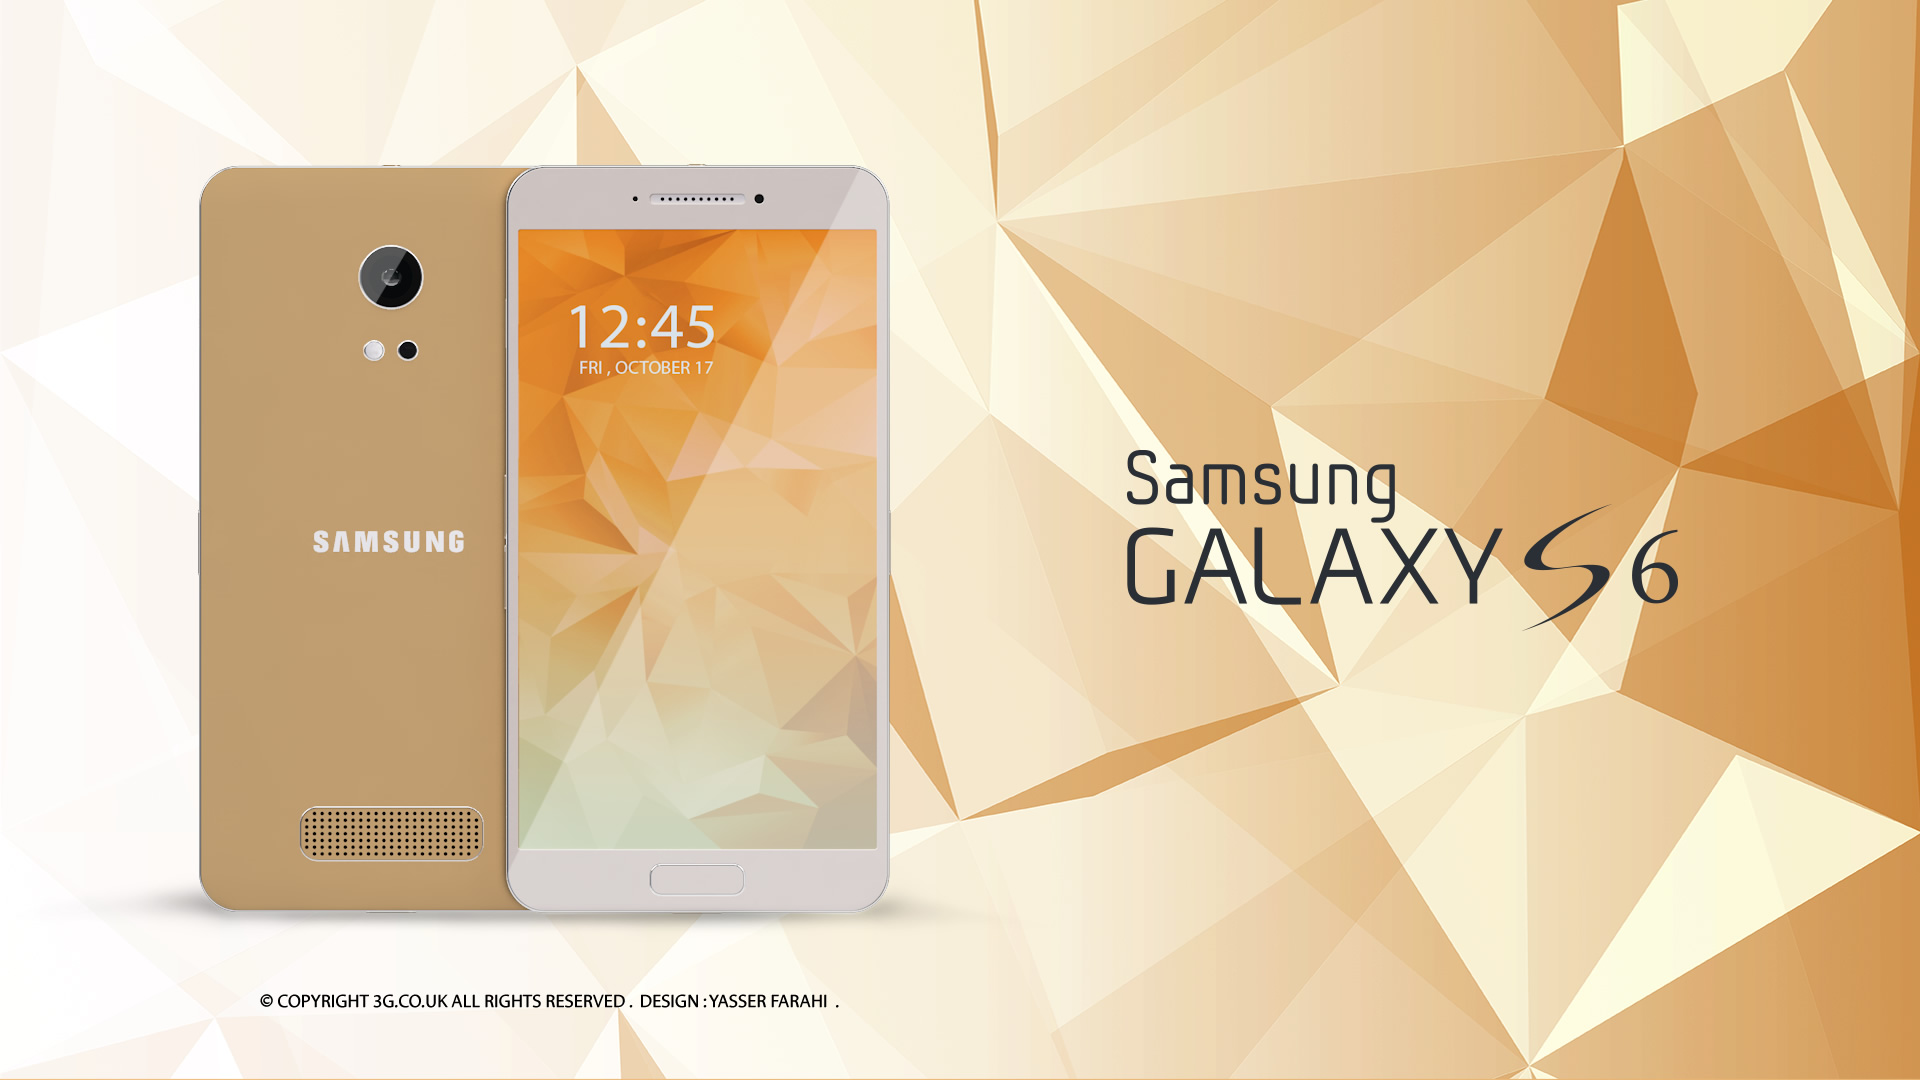 Samsung Galaxy S6 Full Specification 3G